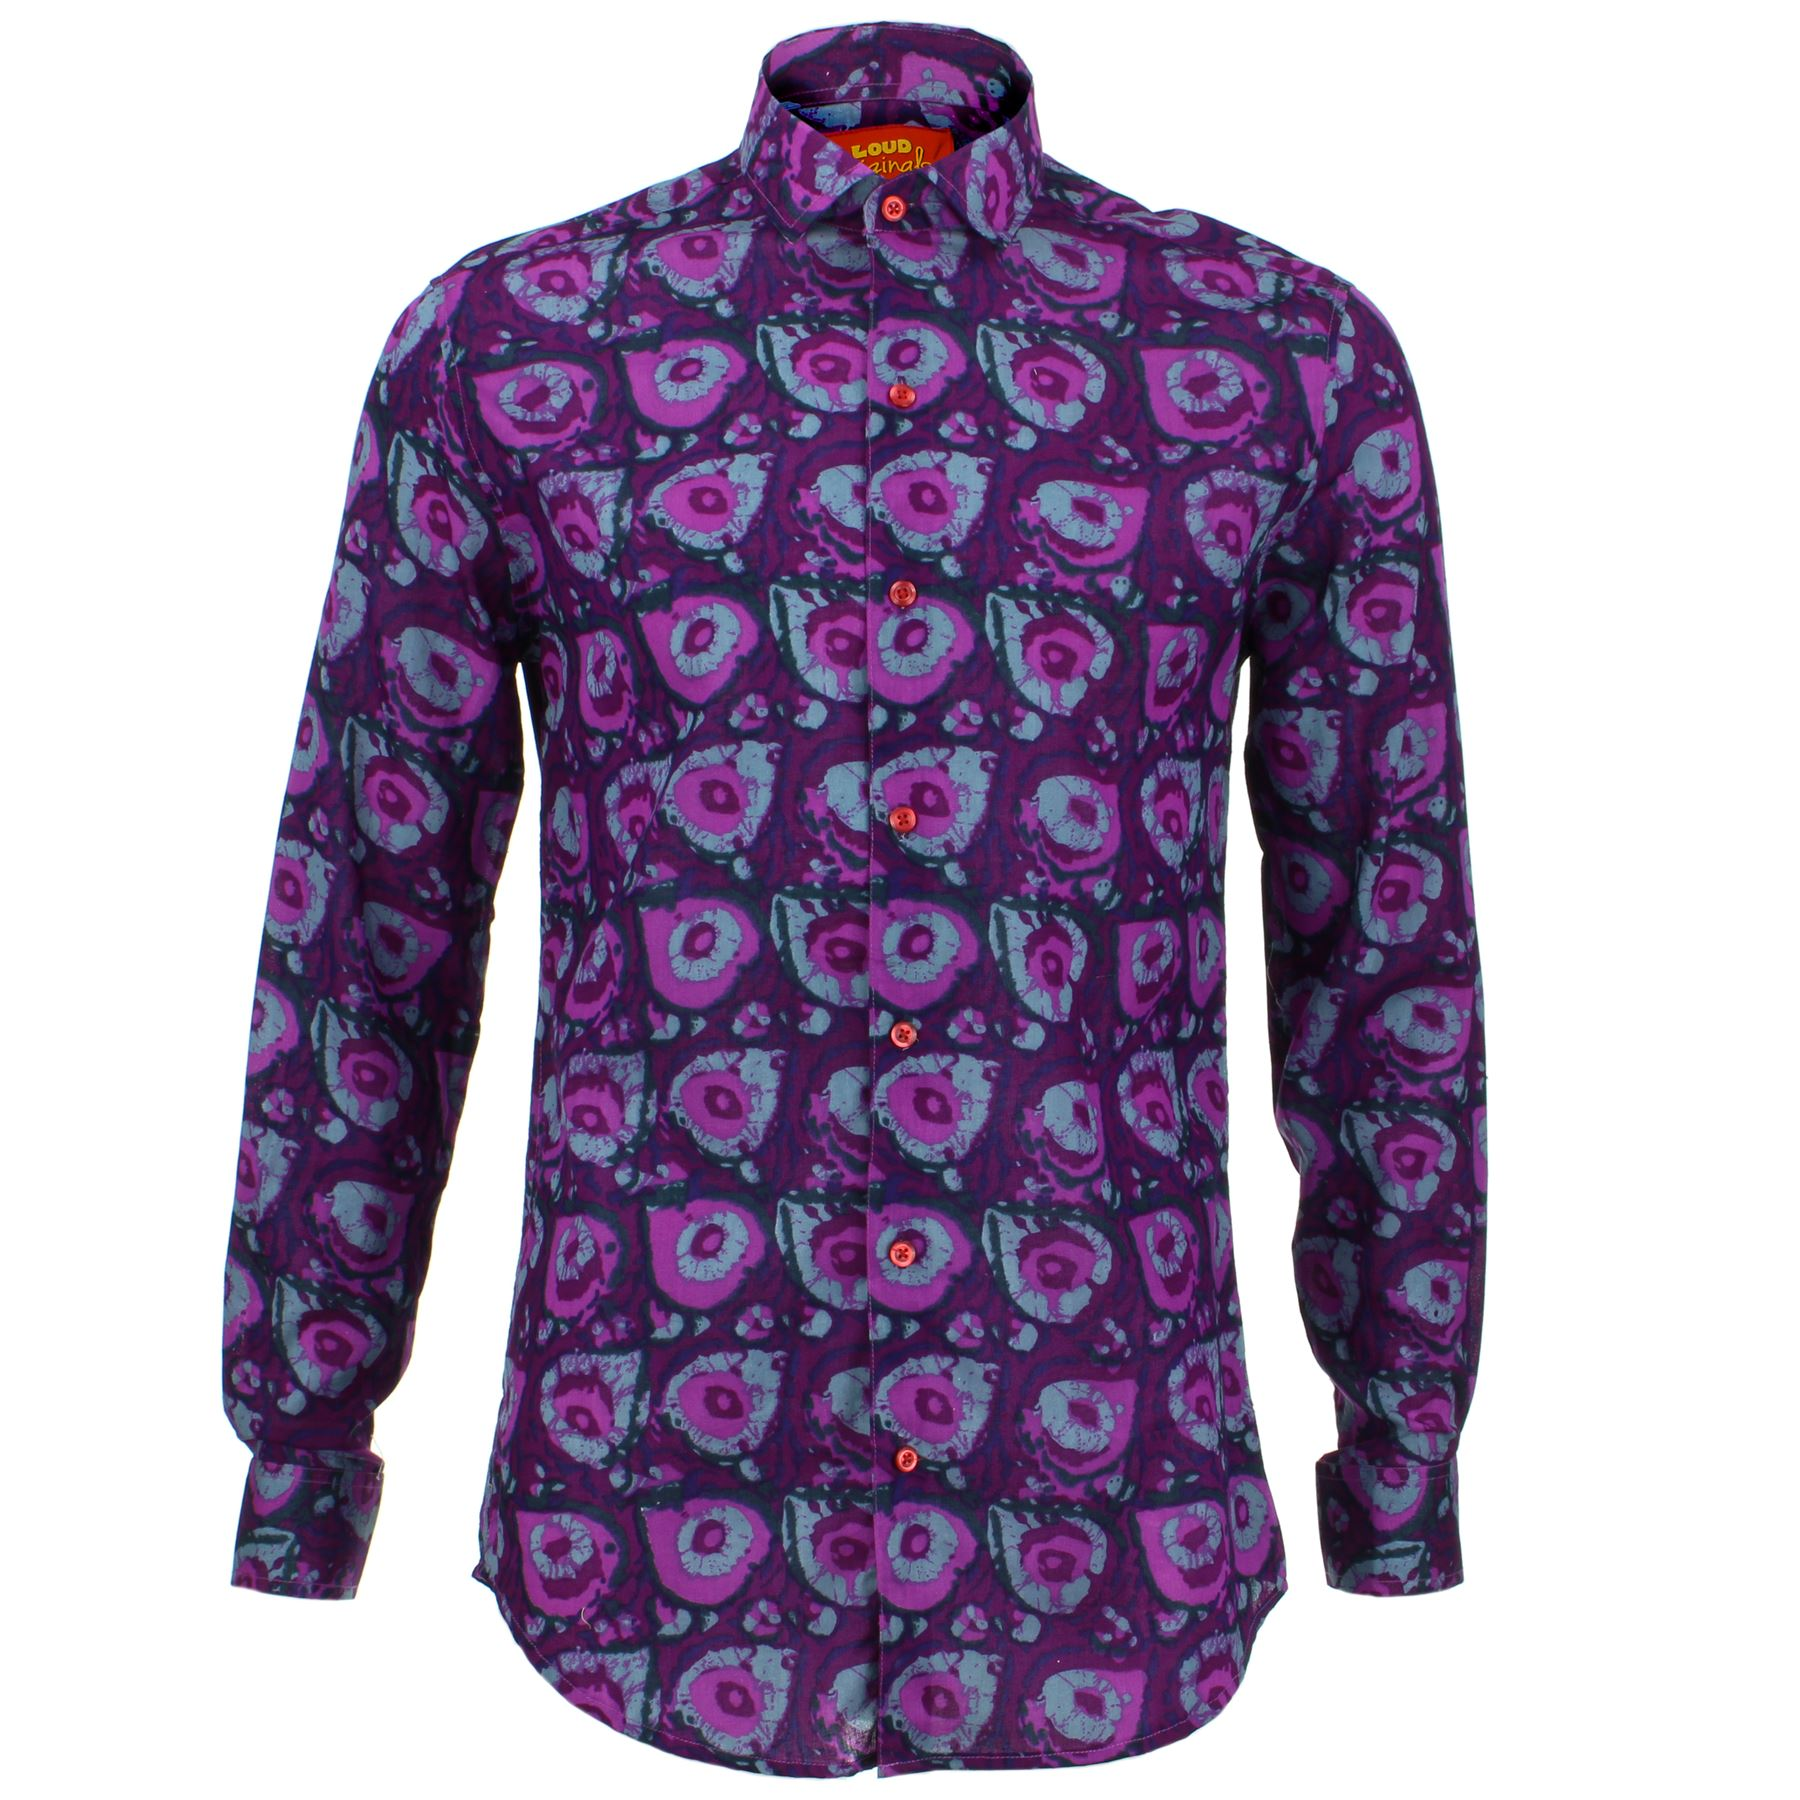 Mens Shirt Loud Originals TAILORED FIT Random Purple Retro Psychedelic Fancy